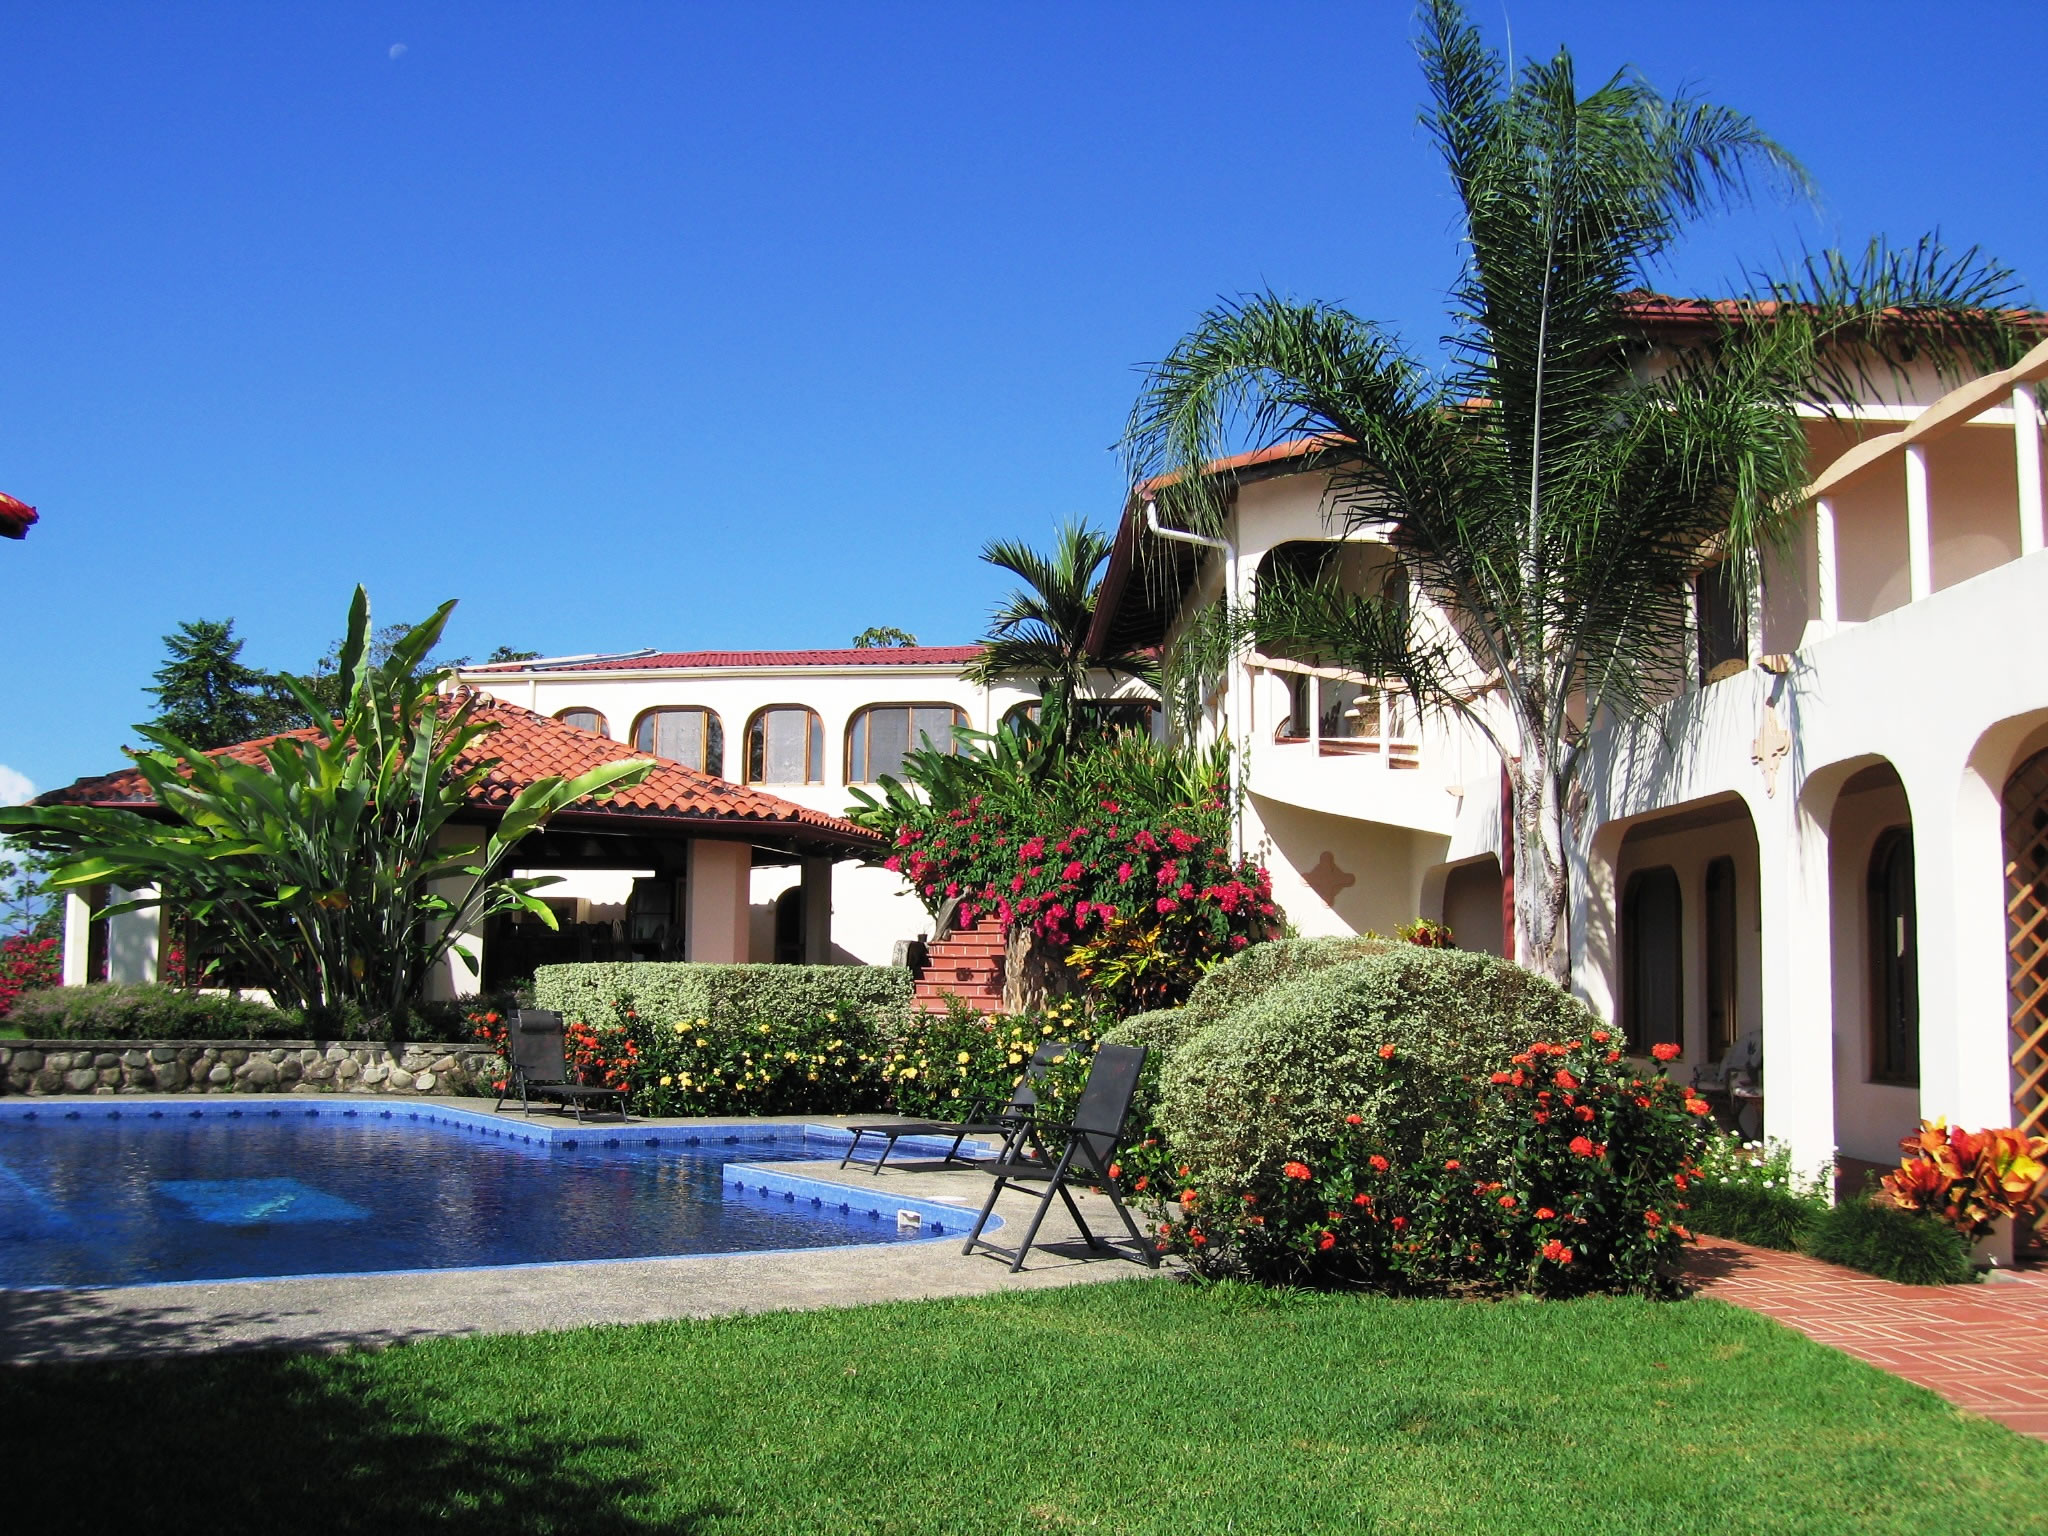 Costa rica guest house photo gallery for House images gallery